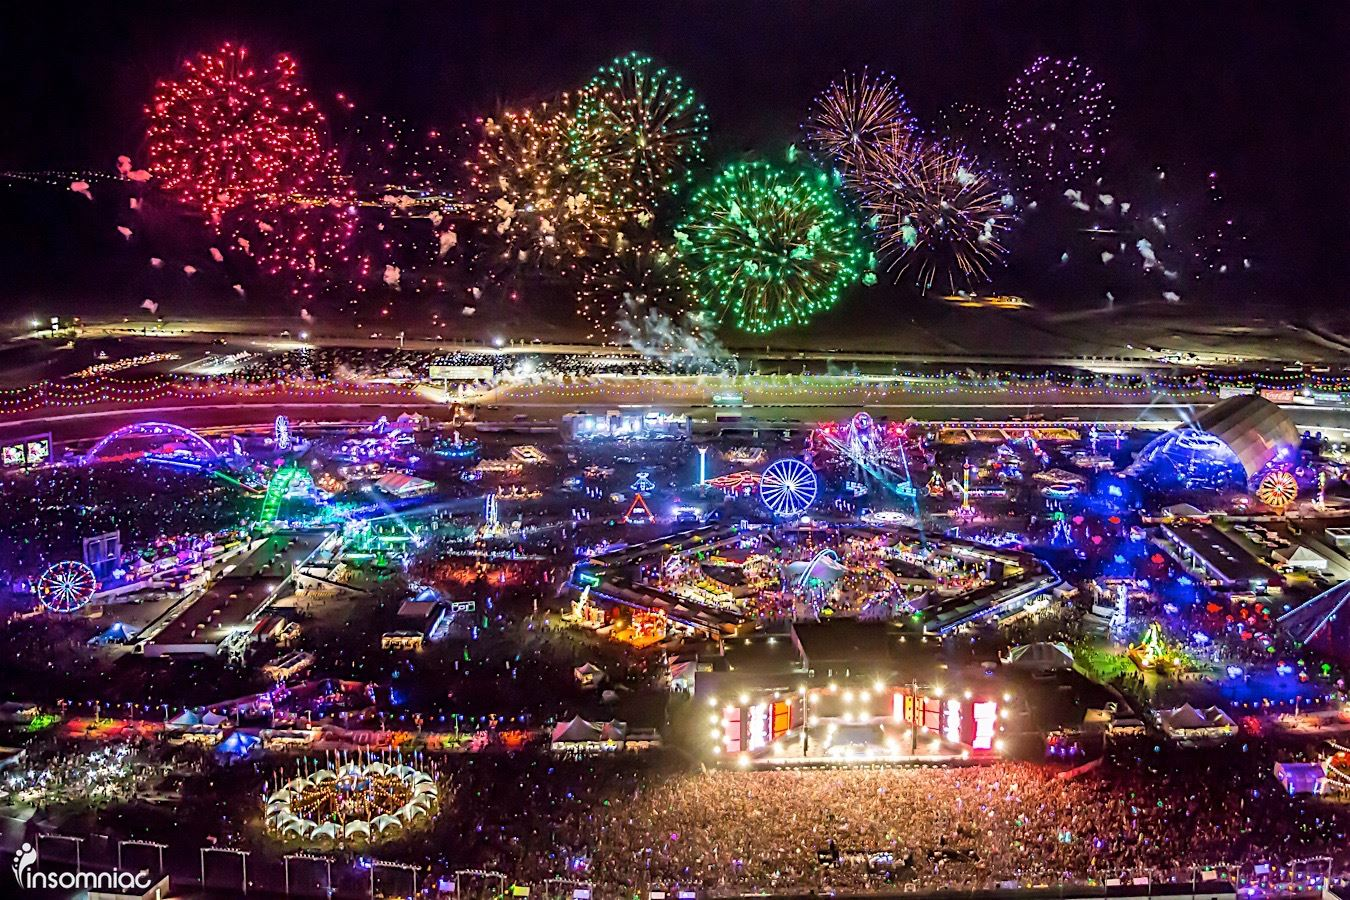 Counting Down To The 20th Anniversary of Electric Daisy Carnival